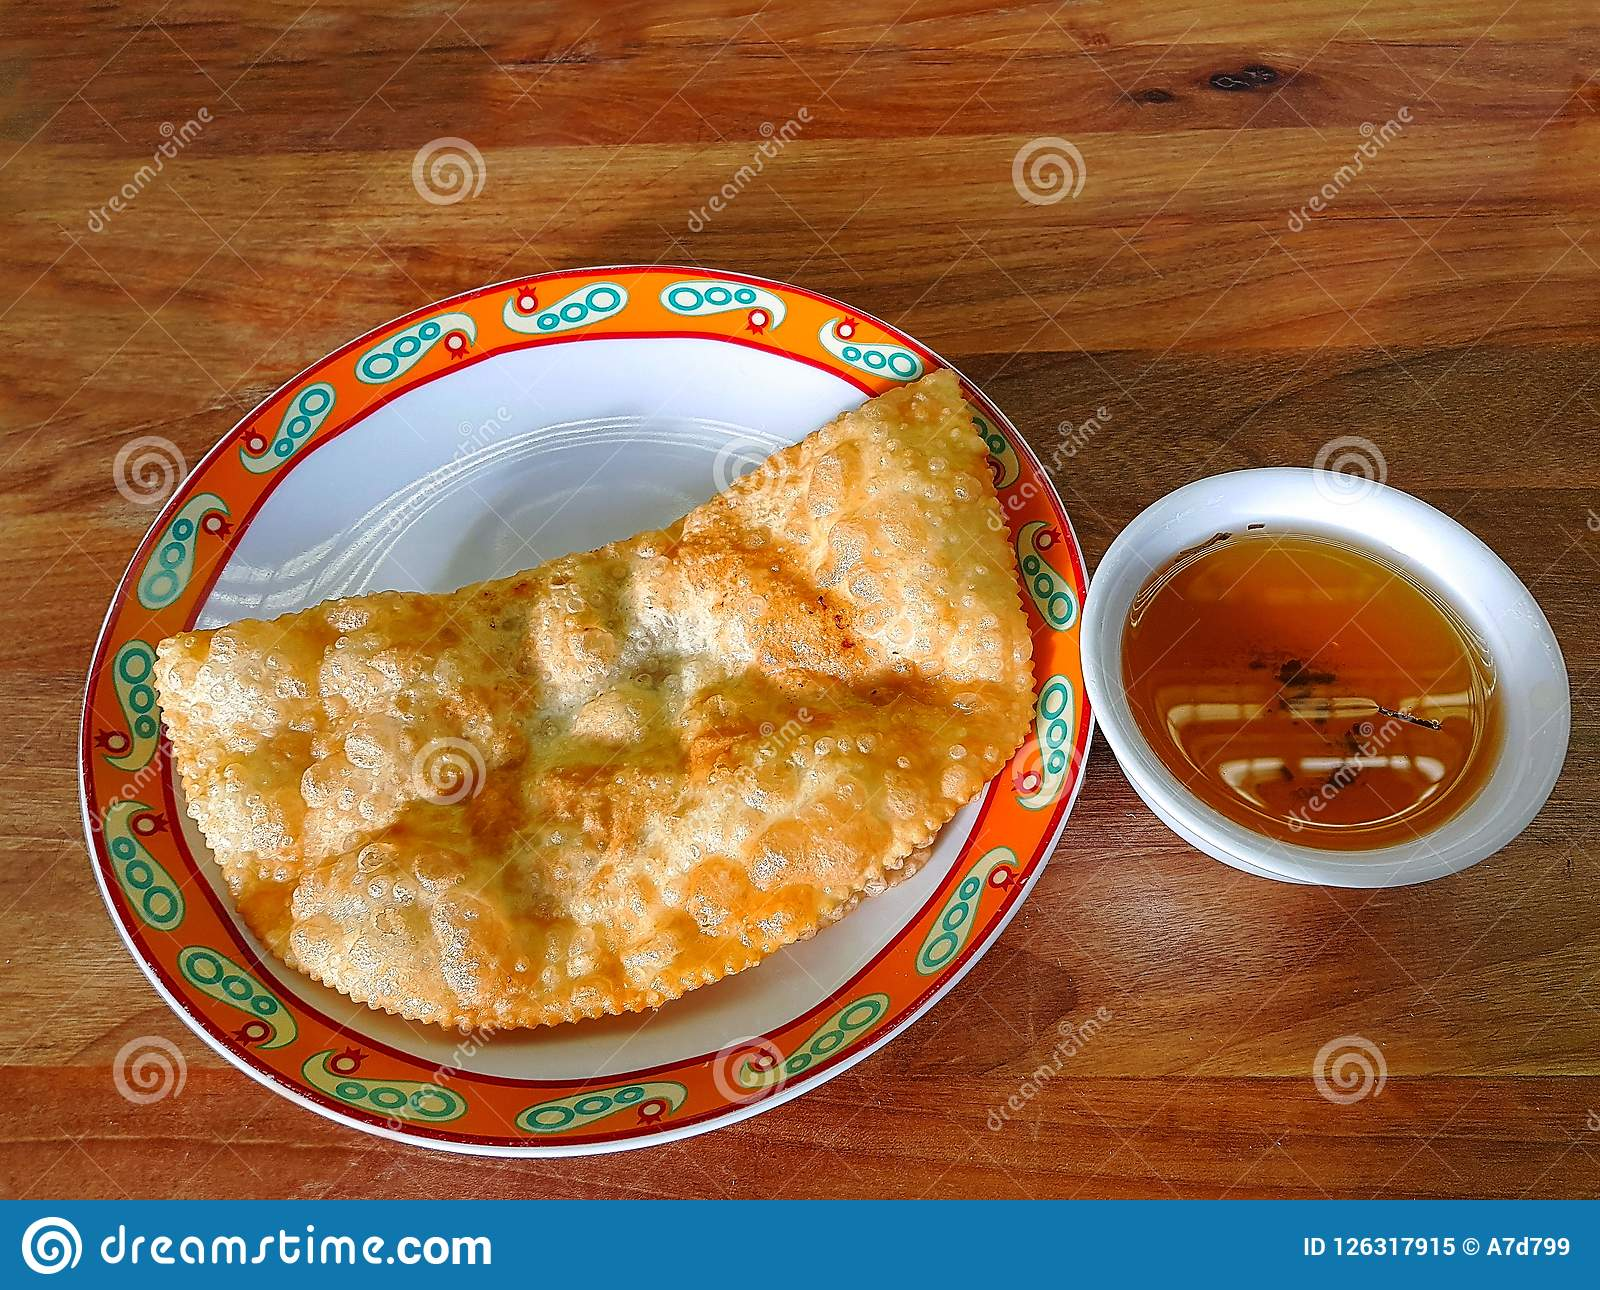 Close Up View Of One Of Traditional Uzbekistan Food And Green Tea On